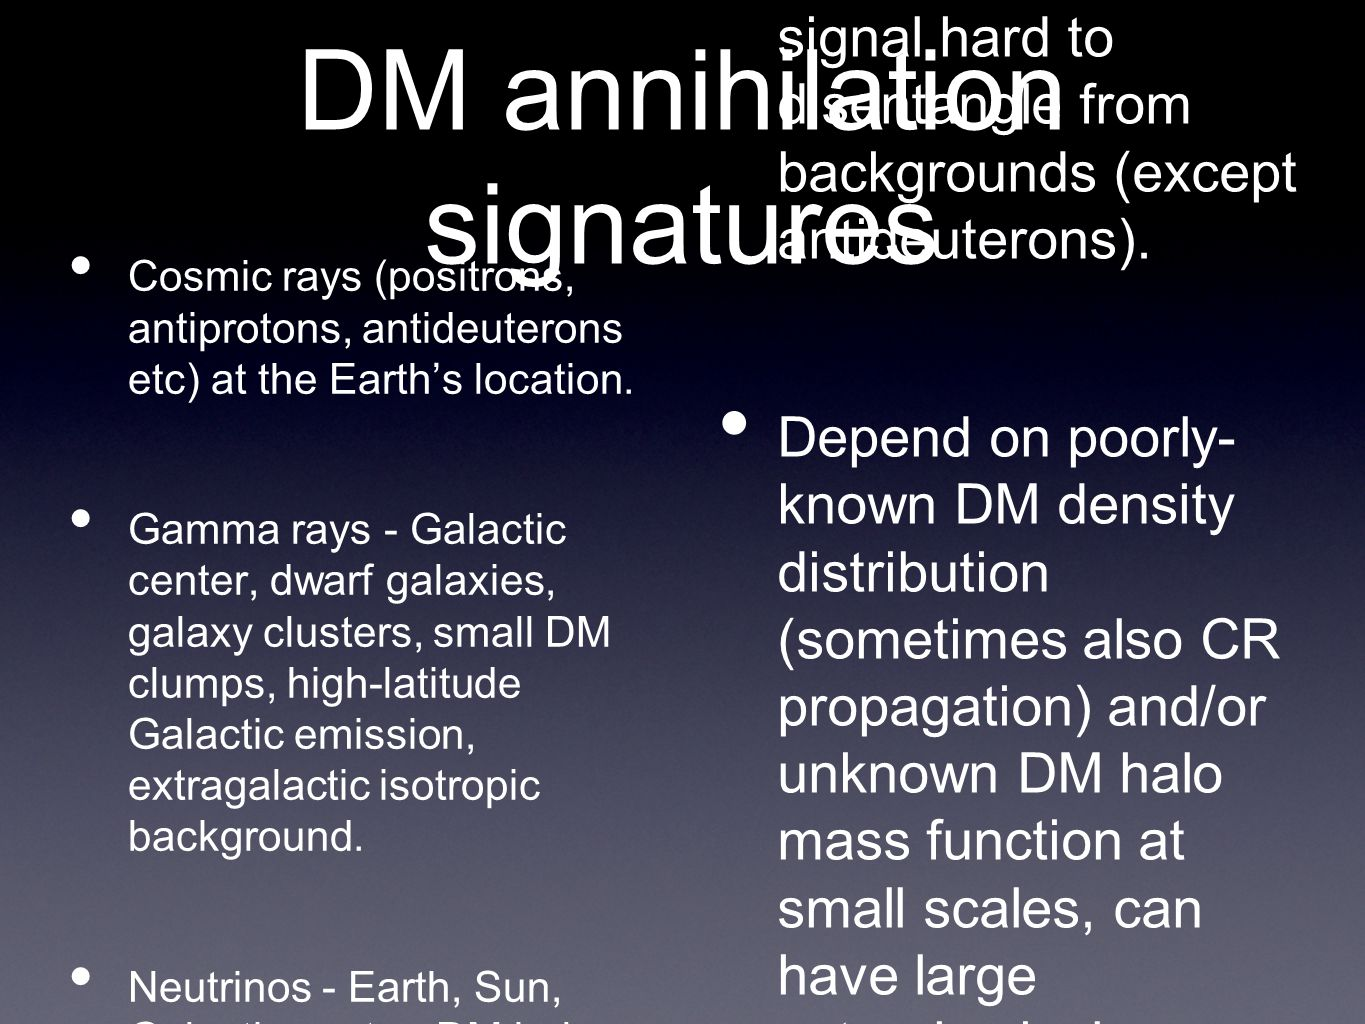 DM annihilation signatures • Cosmic rays (positrons, antiprotons, antideuterons etc) at the Earth's location.